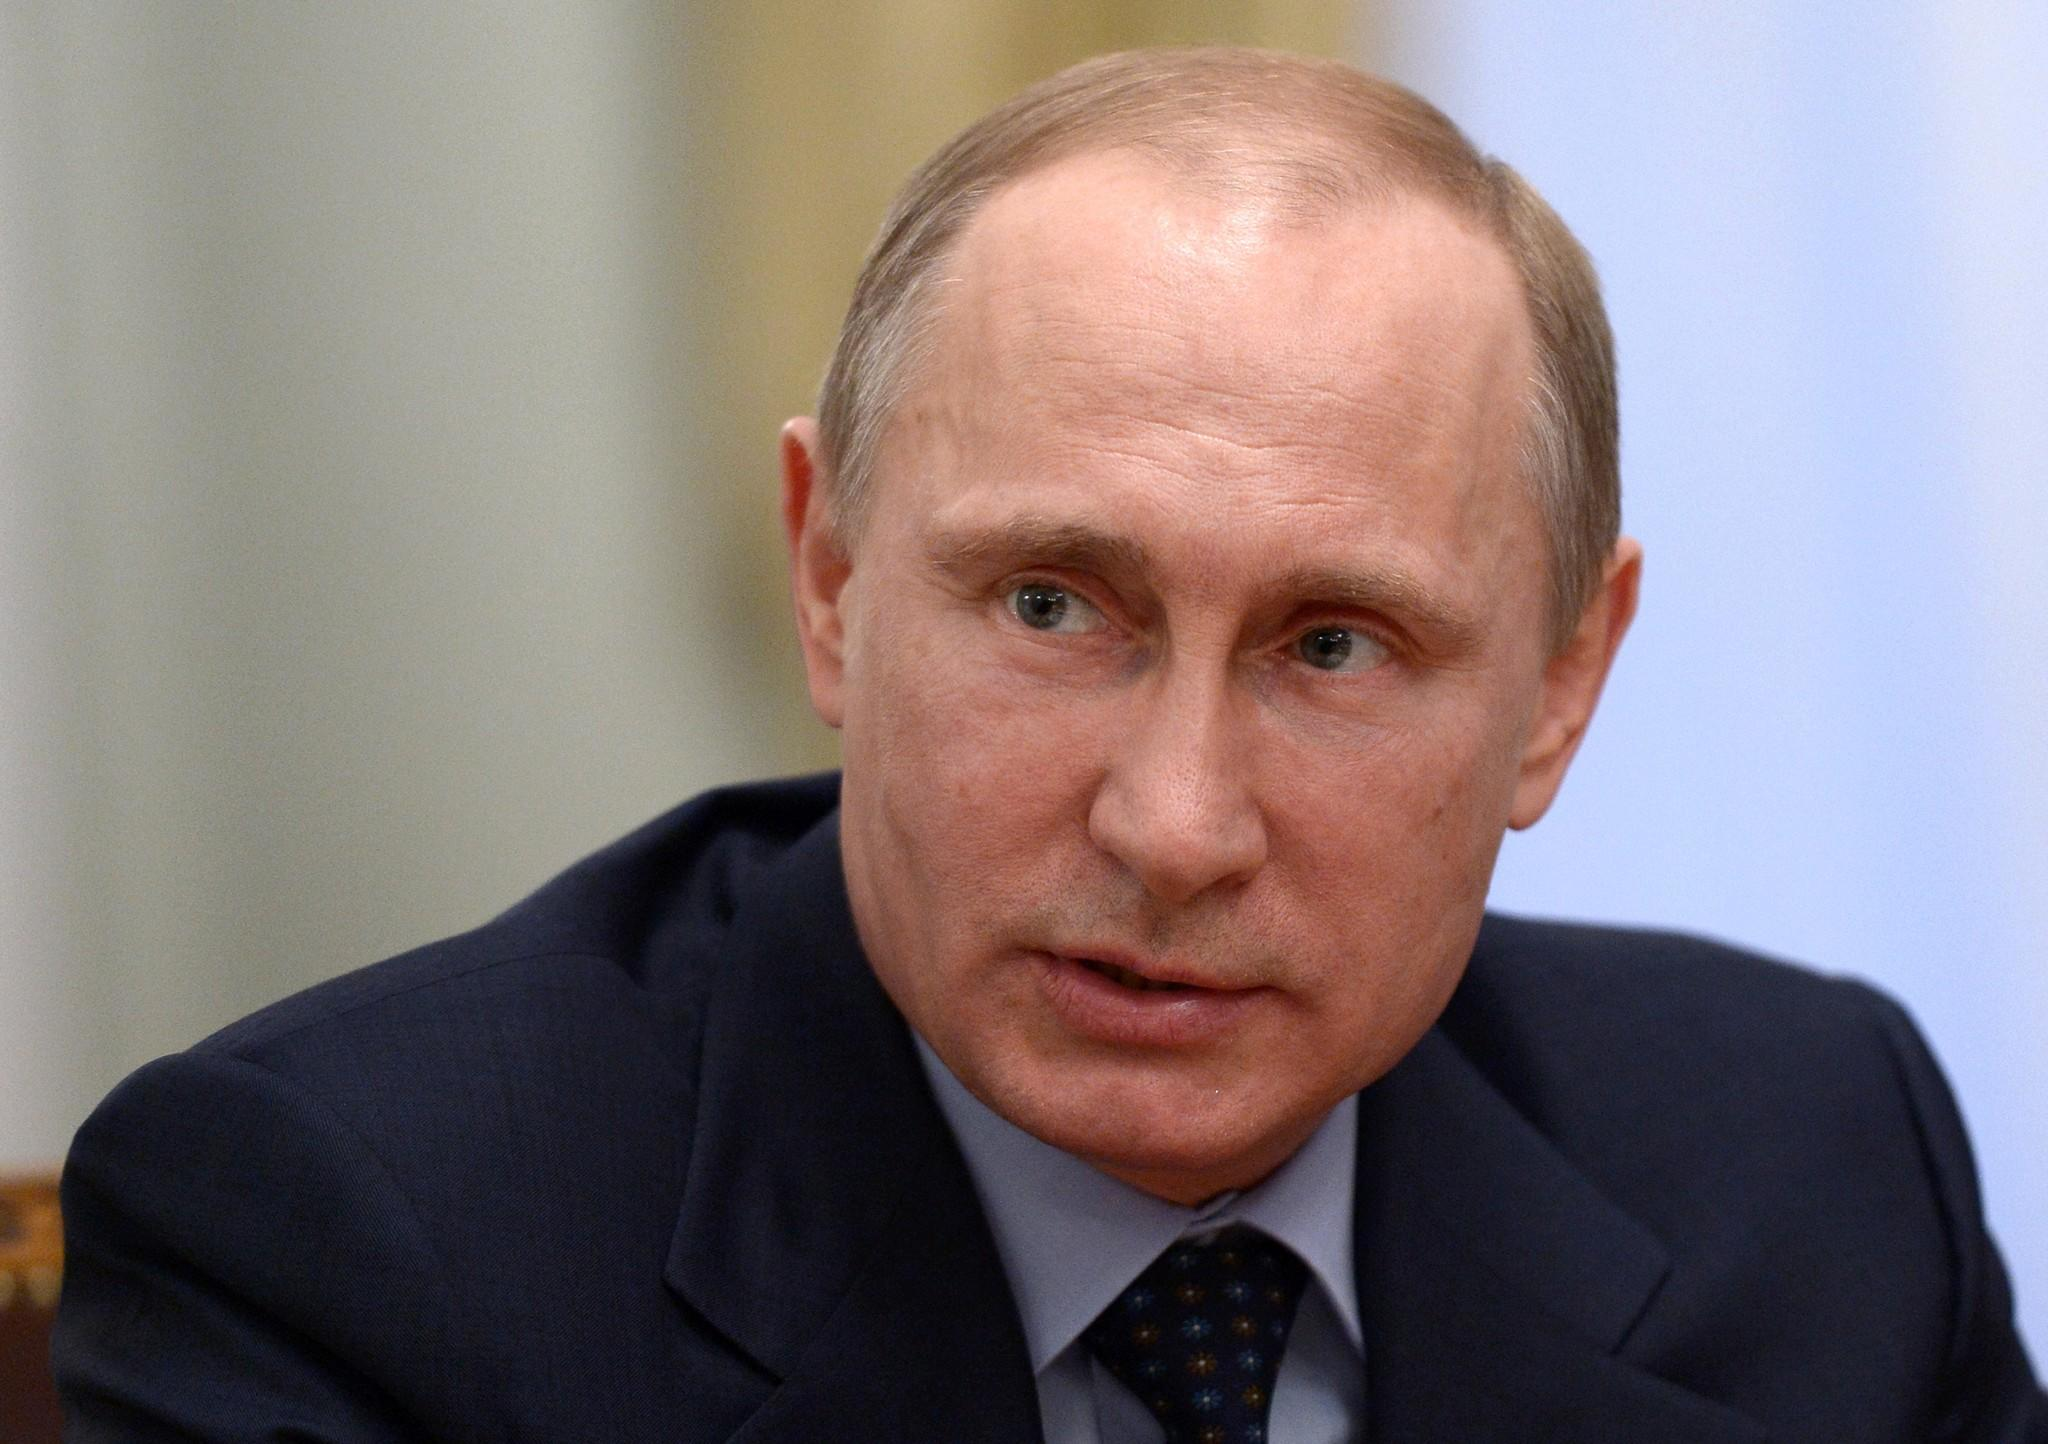 Russian President Vladimir Putin speaks during a meeting at the Novo-Ogaryovo residence outside Moscow, Russia.